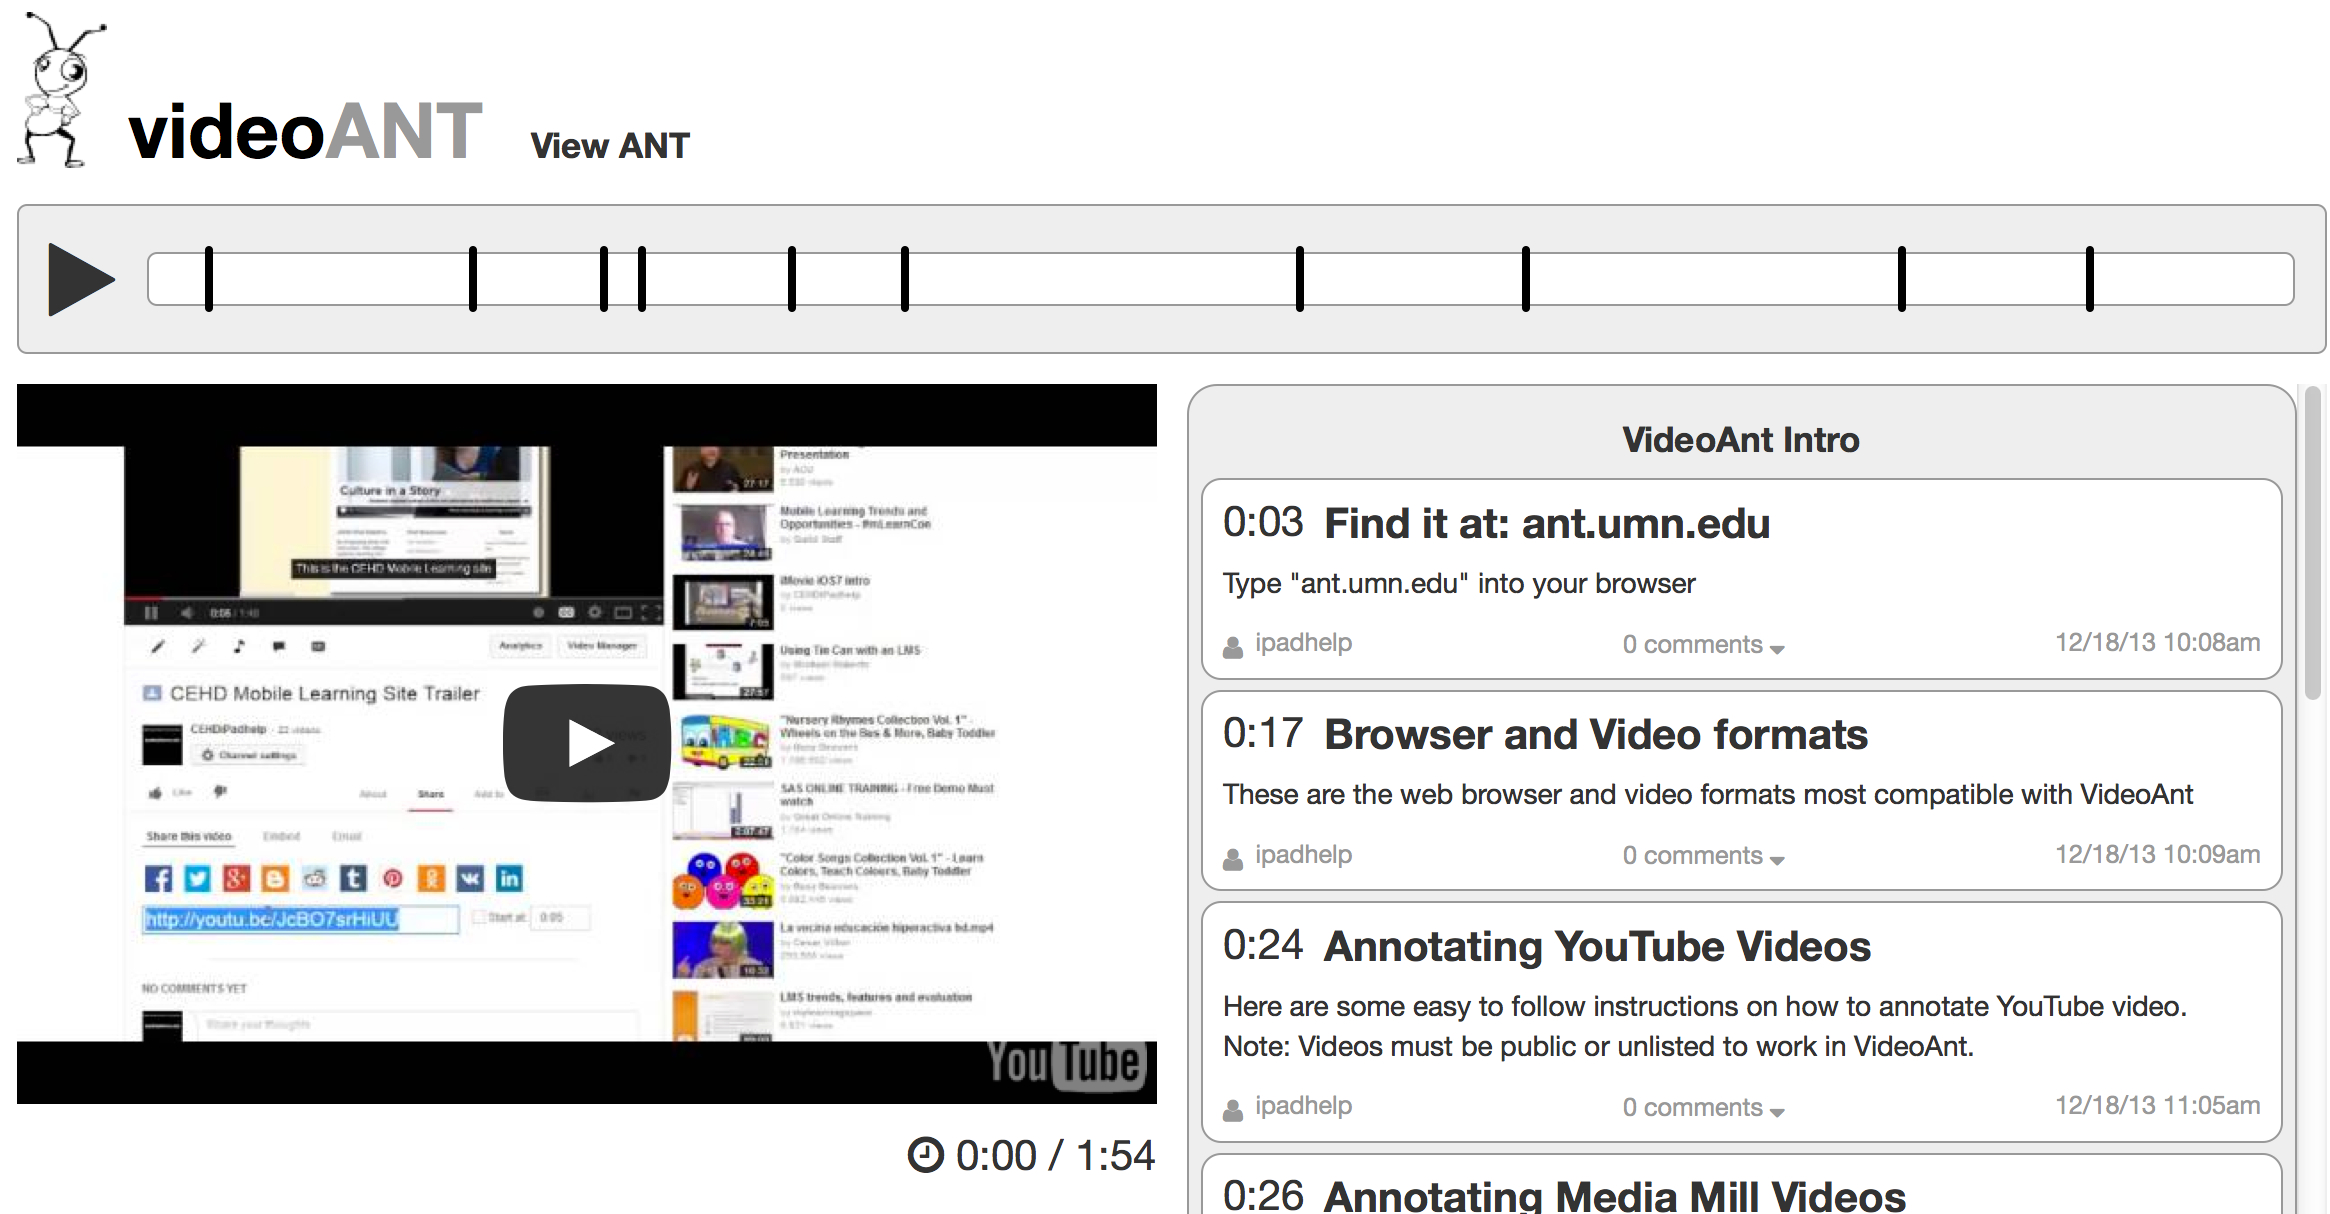 VideoANT for Quick and Easy Video Annotations